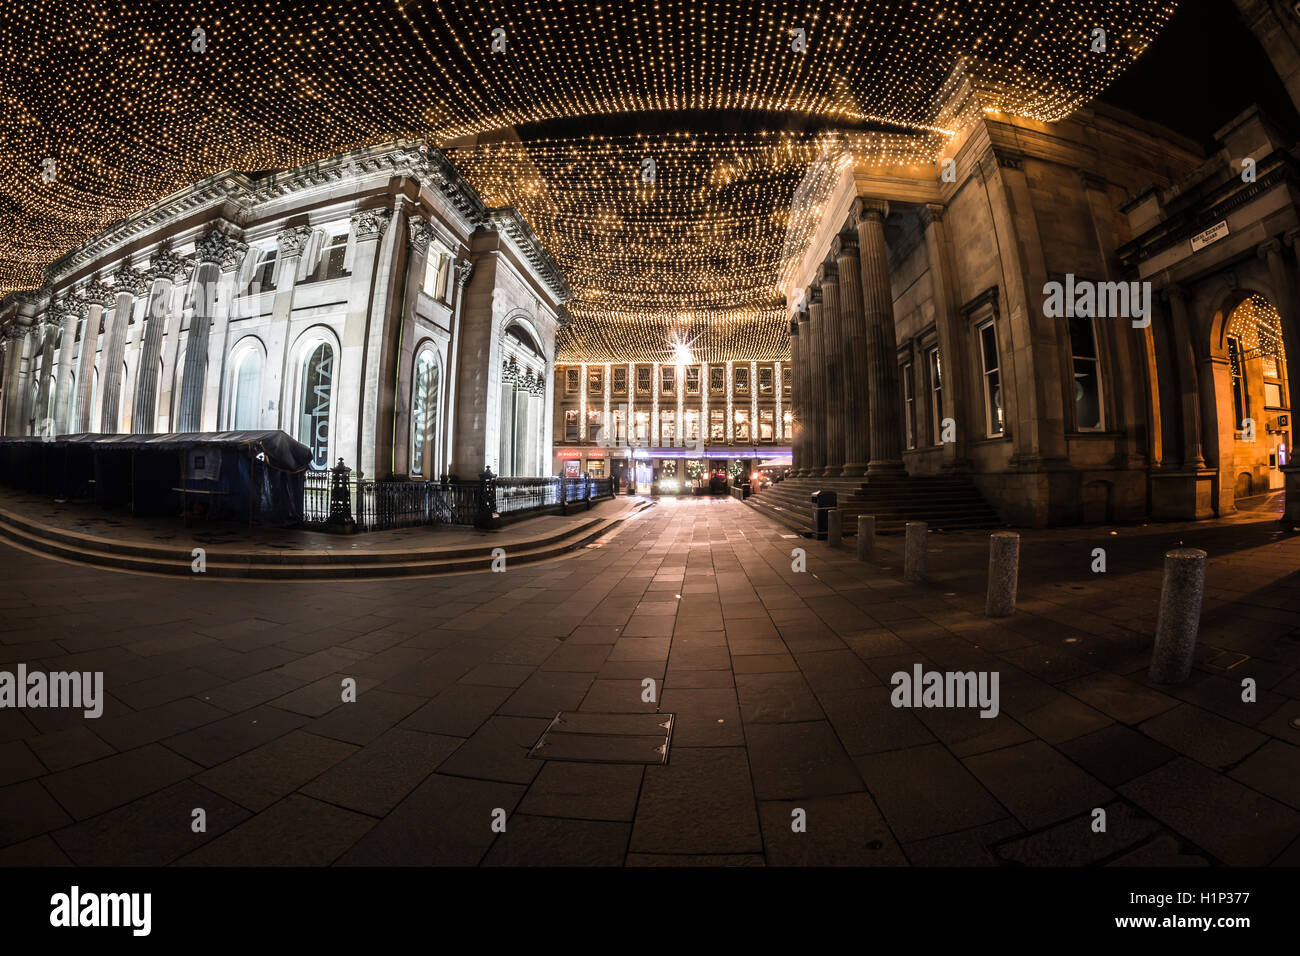 Glasgow Goma royal exchange square night photography lights Scotland town Centre, architecture - Stock Image